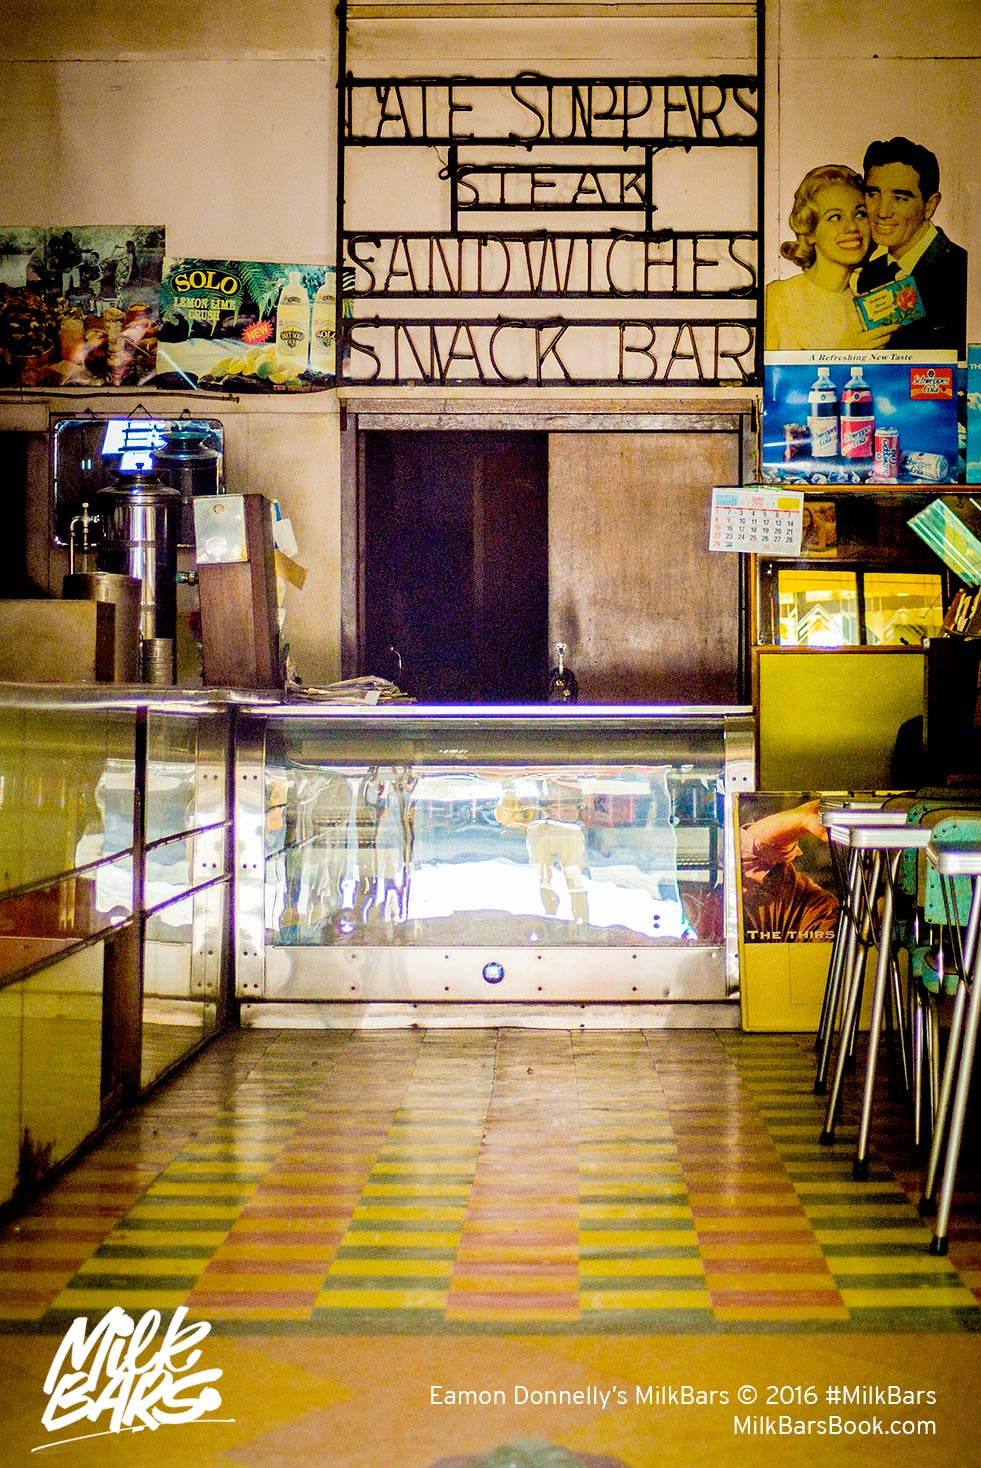 Olympia-Milk-Bar-5-Sydney-Stanmore-Parramatta-Road-Eamon-Donnelly's-Milk-Bars-Book-Project-(c)-2001-2016.jpg